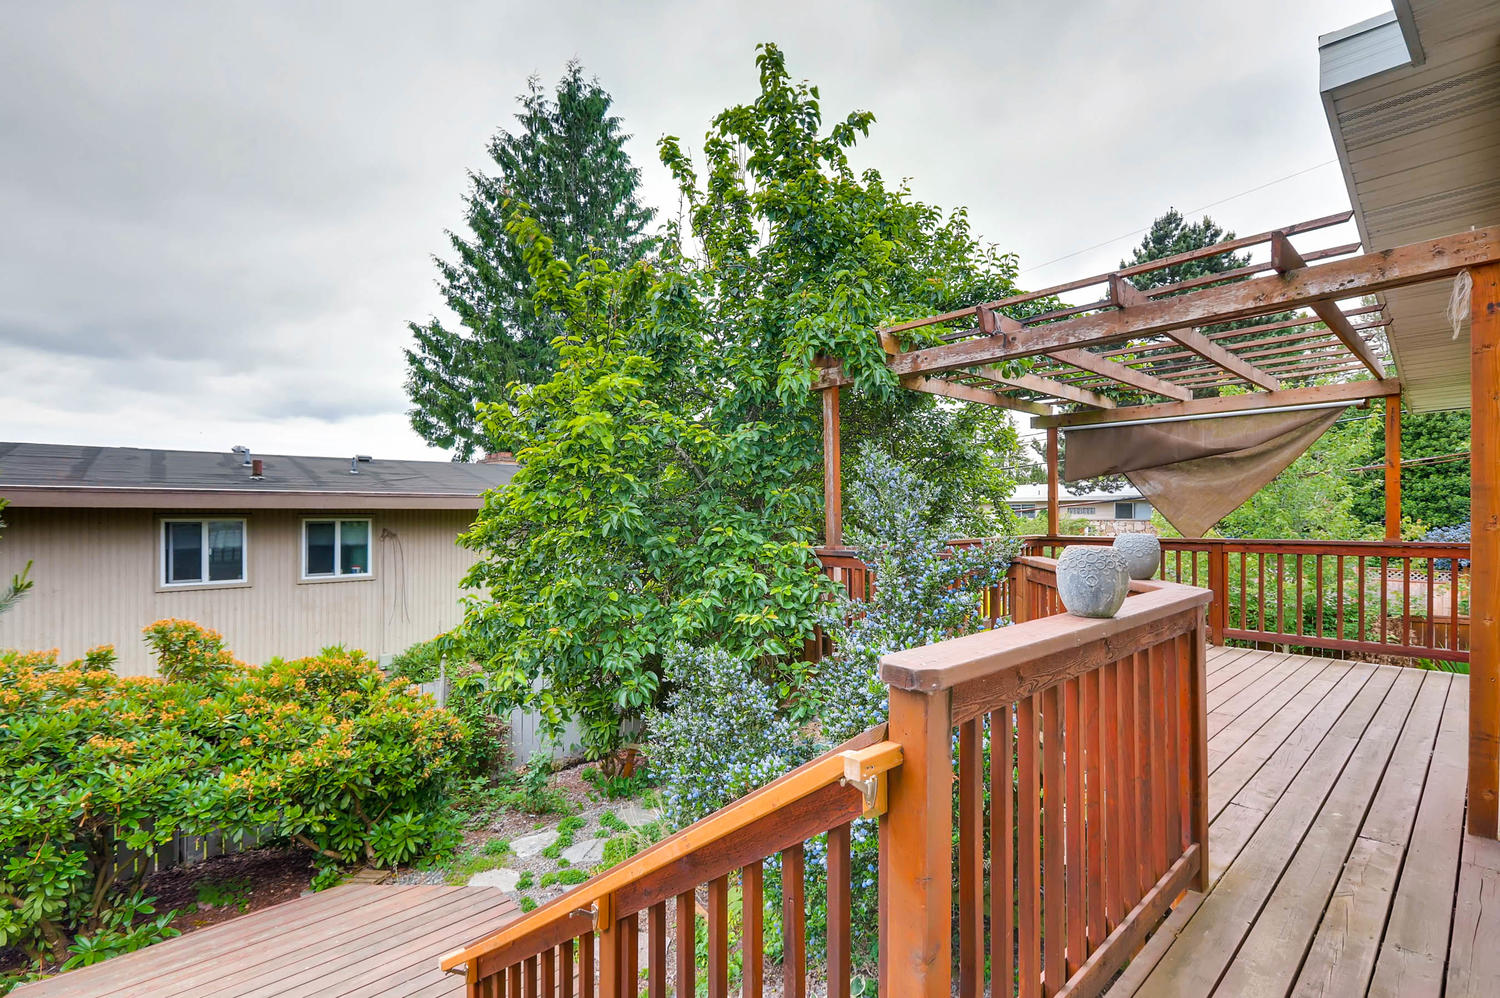 Photo of 9525 S 207th Pl, Kent, WA, 98031